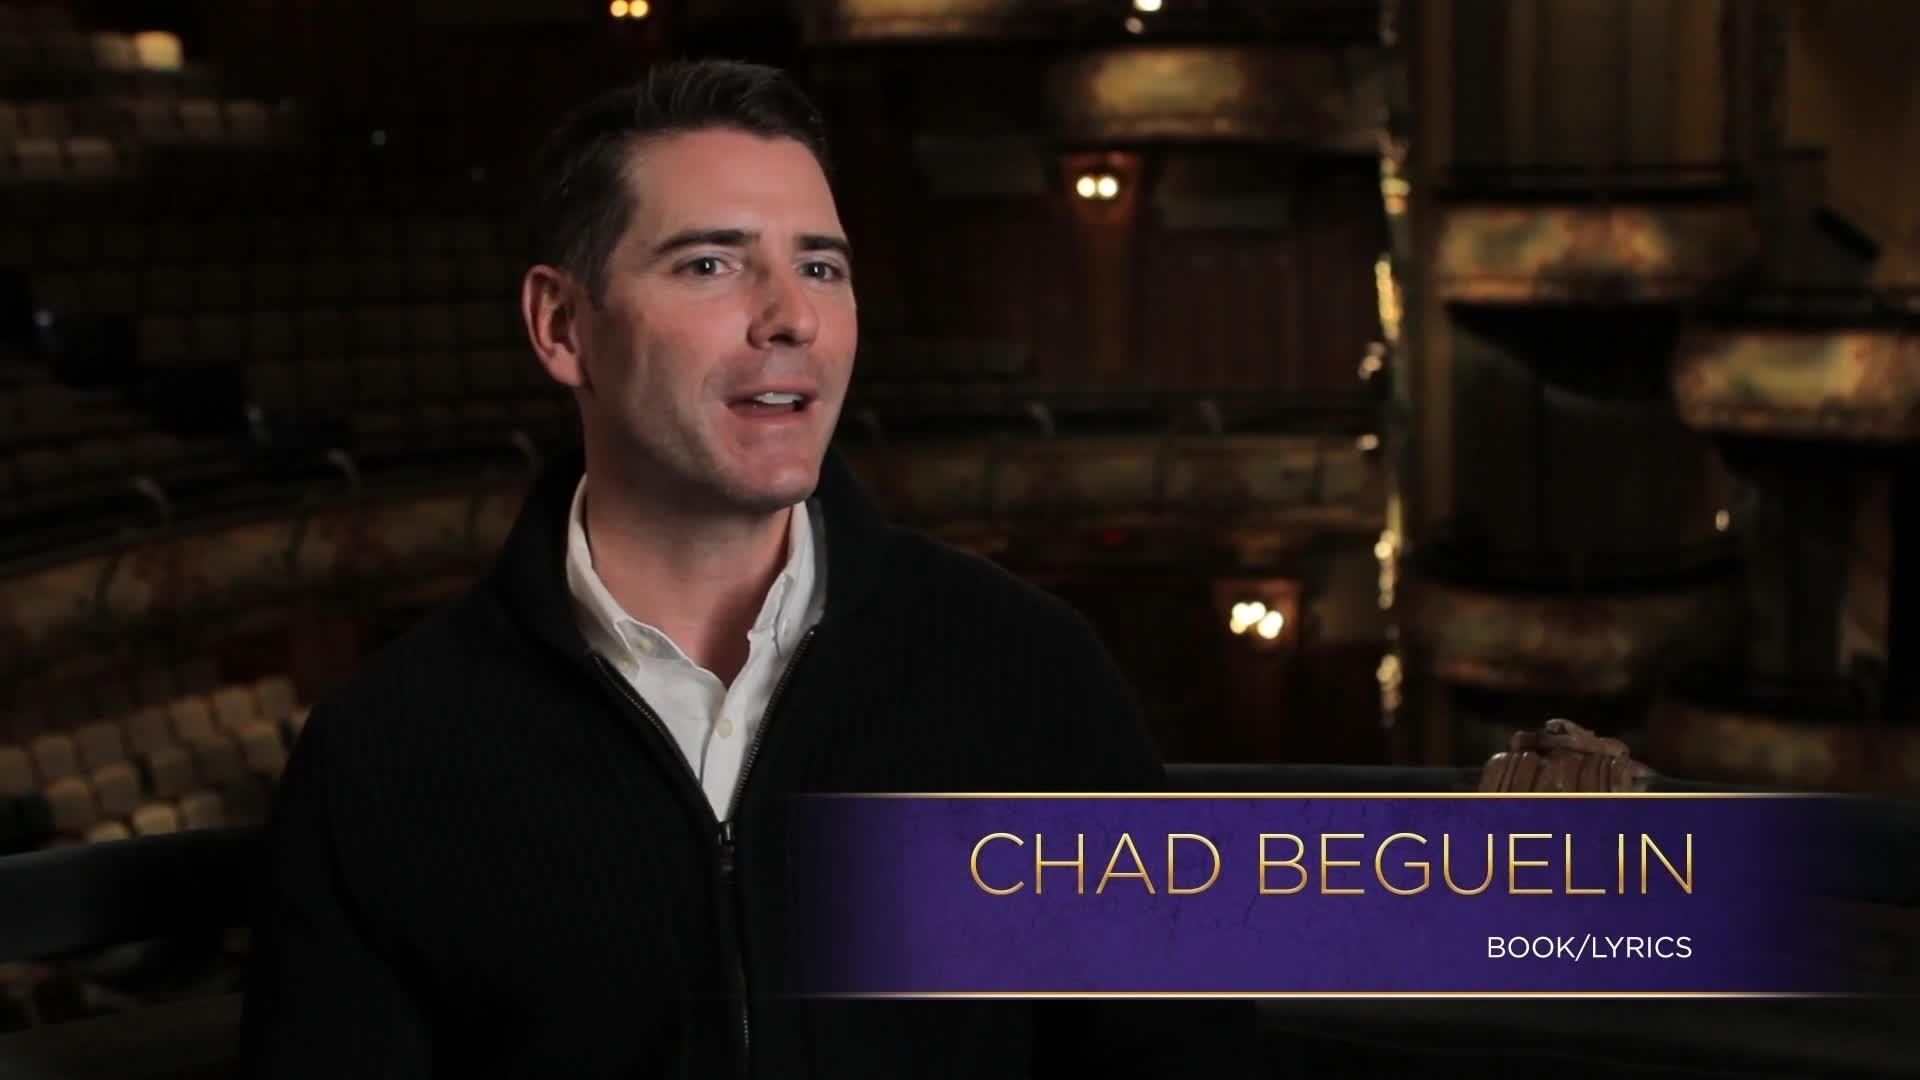 Interview with Chad Beguelin - Aladdin the Musical